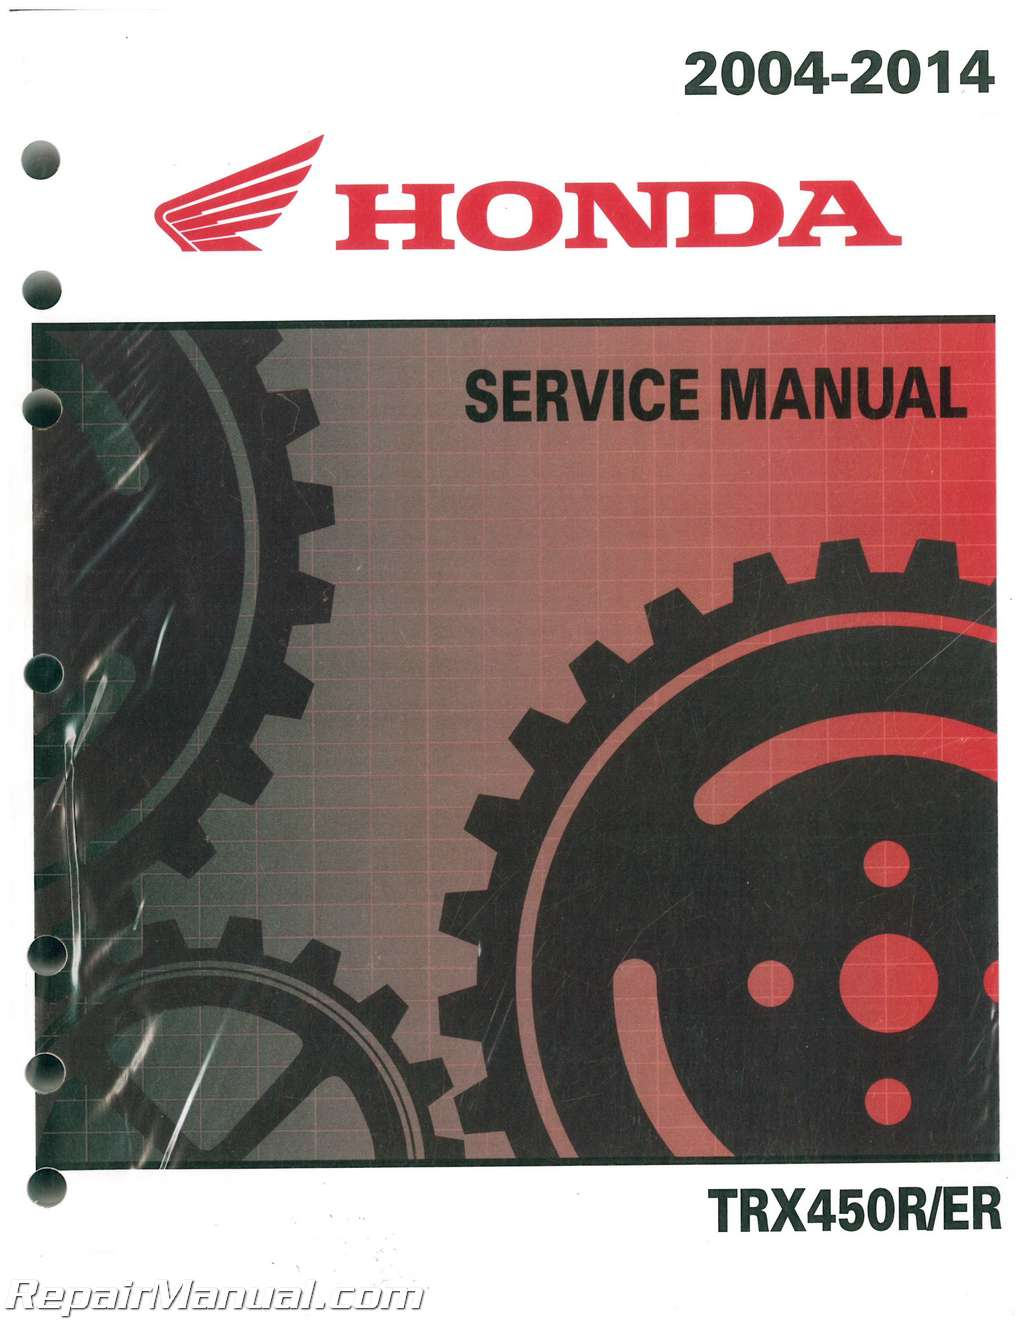 2004 2014 Honda Trx450r Er Sportrax Atv Service Manual 300ex Engine Camshaft Diagram